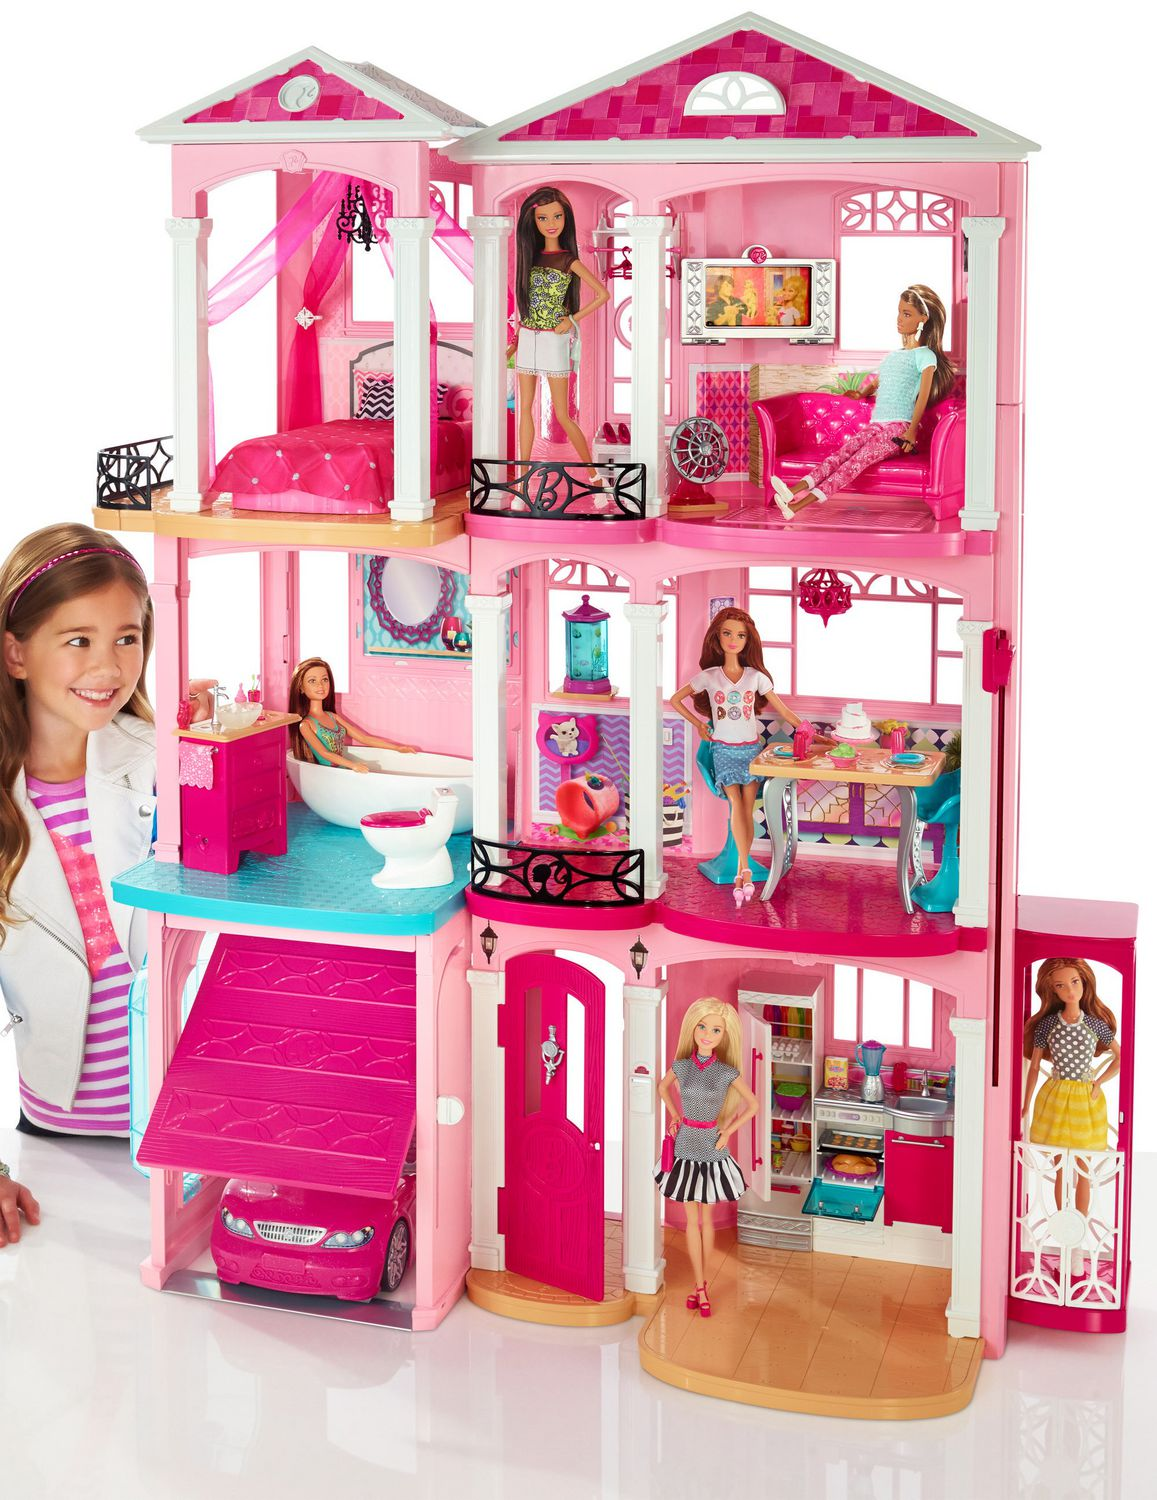 Maison de barbie avec ascenseur avie home - Barbie ma maison de reve ...